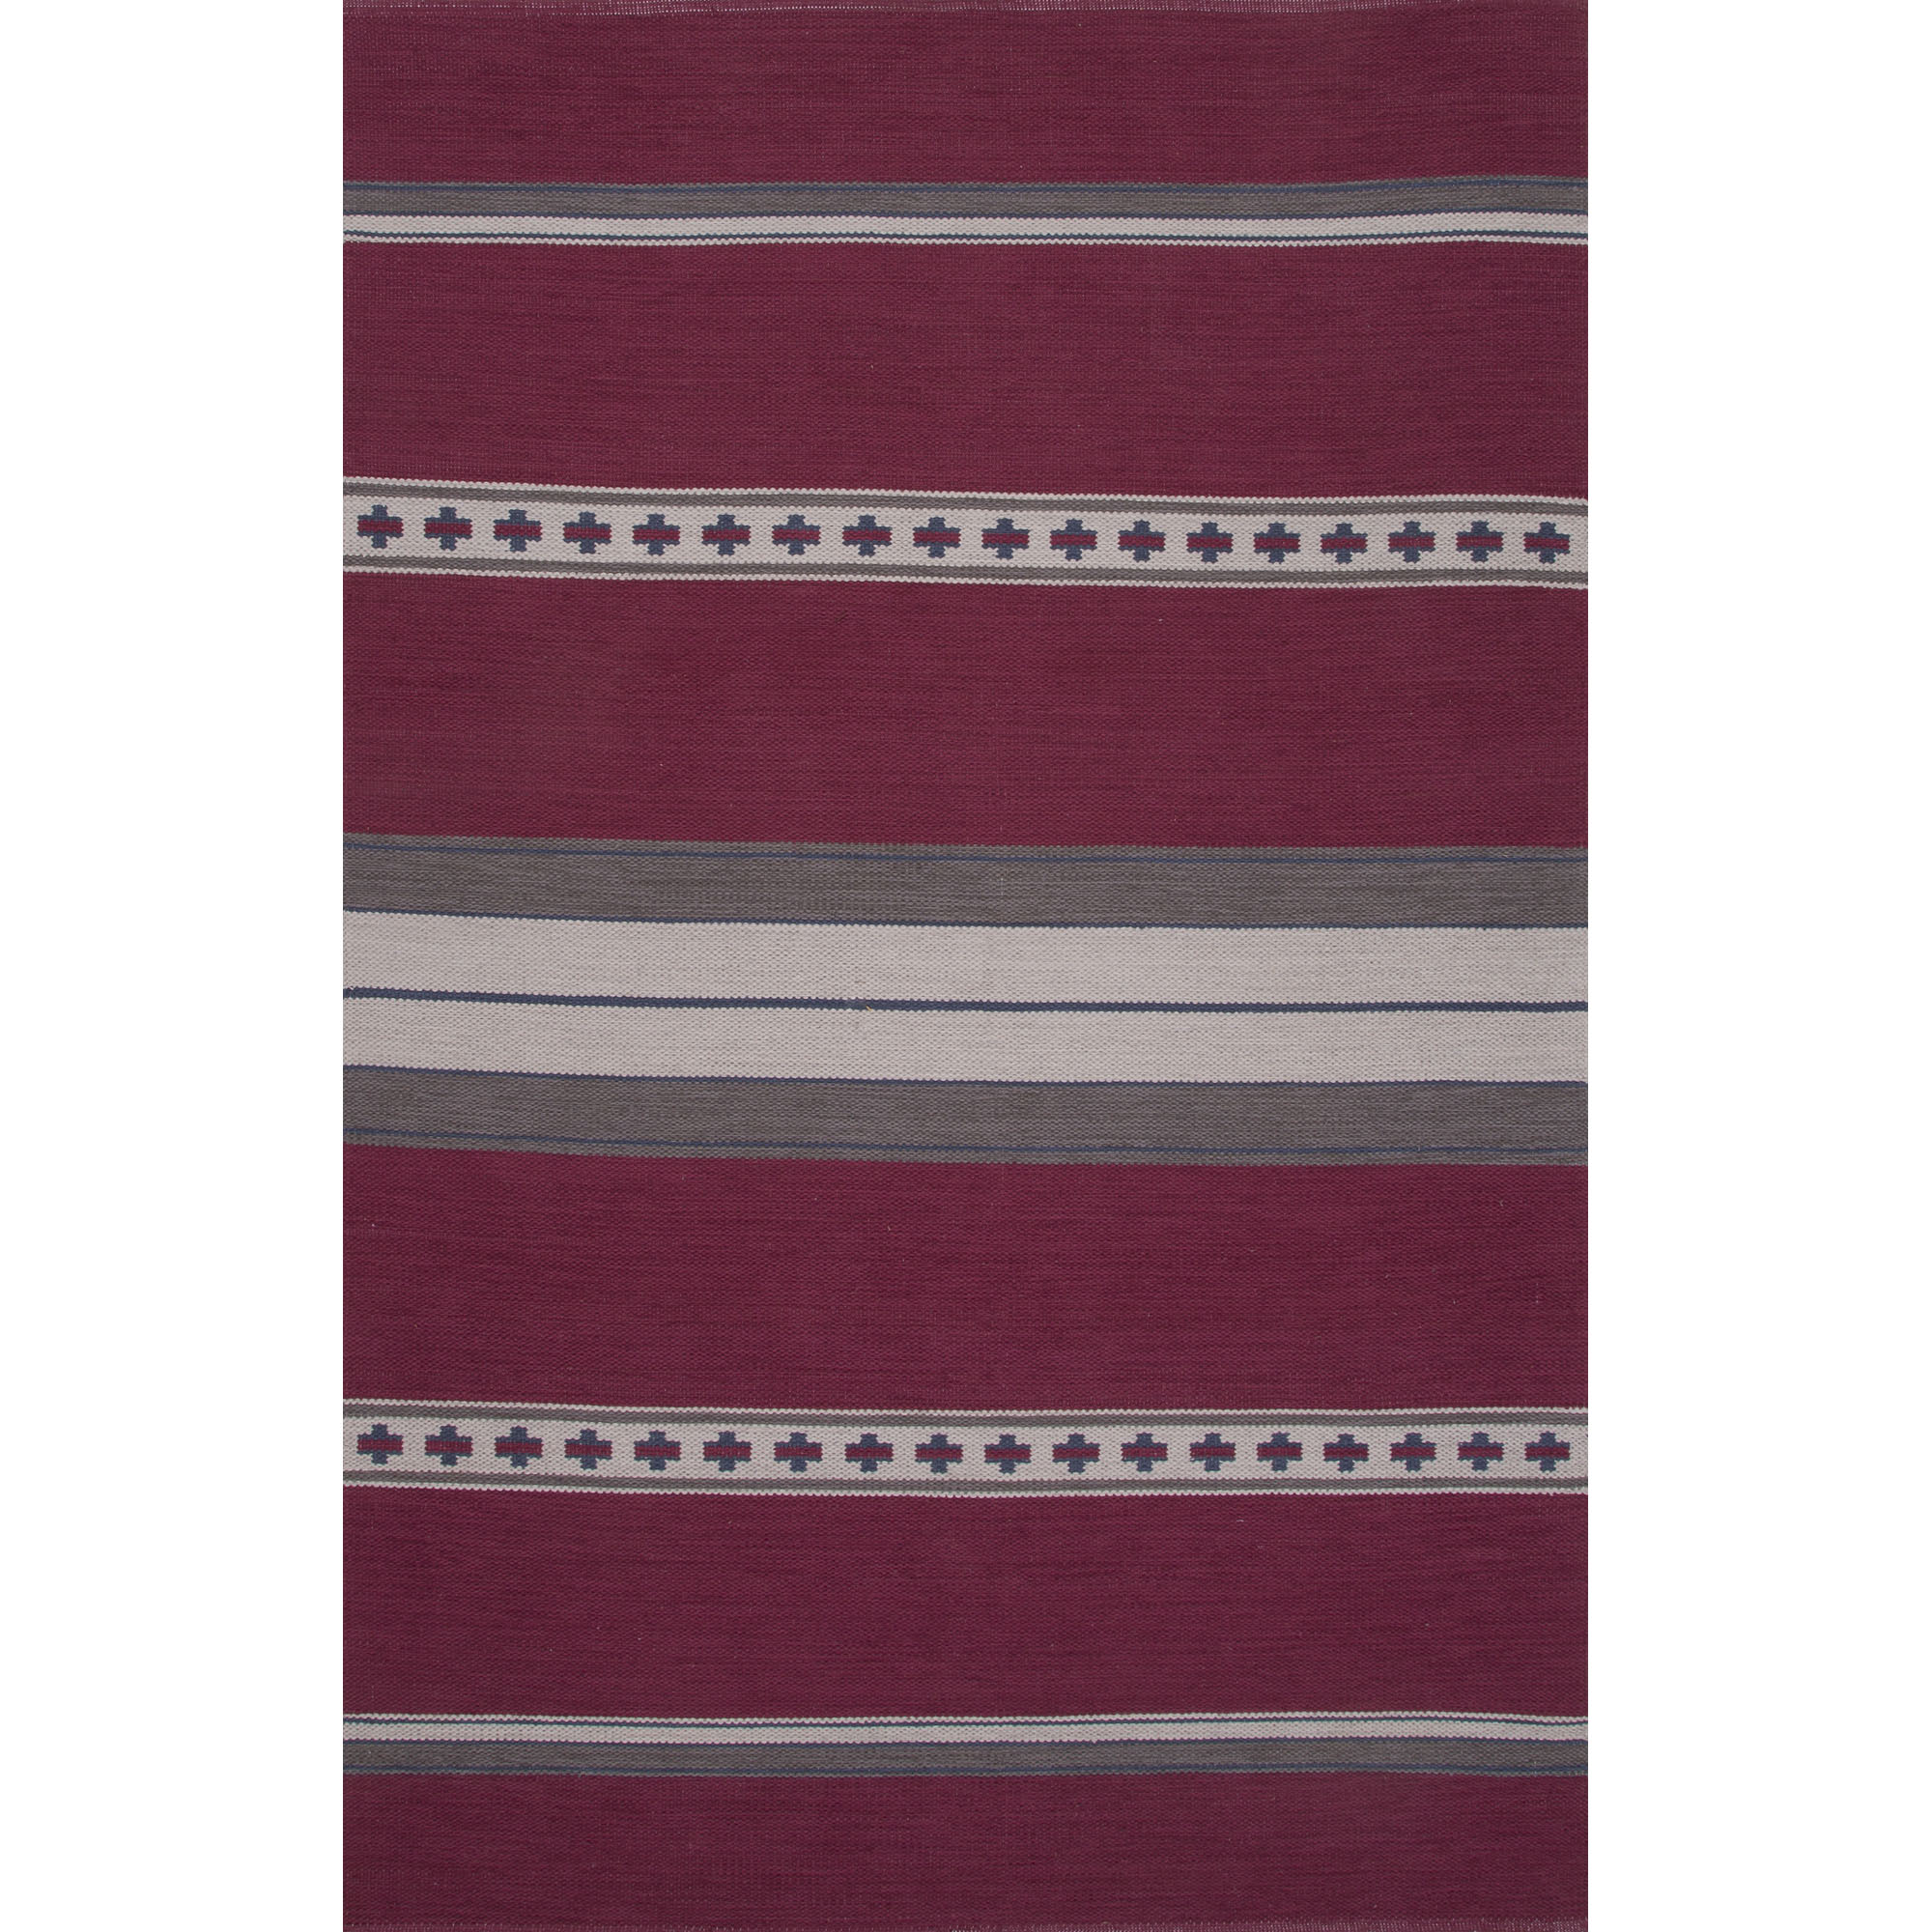 JAIPUR Rugs Traditions Modern Cotton Flat Weave 2 x 3 Rug - Item Number: RUG122220